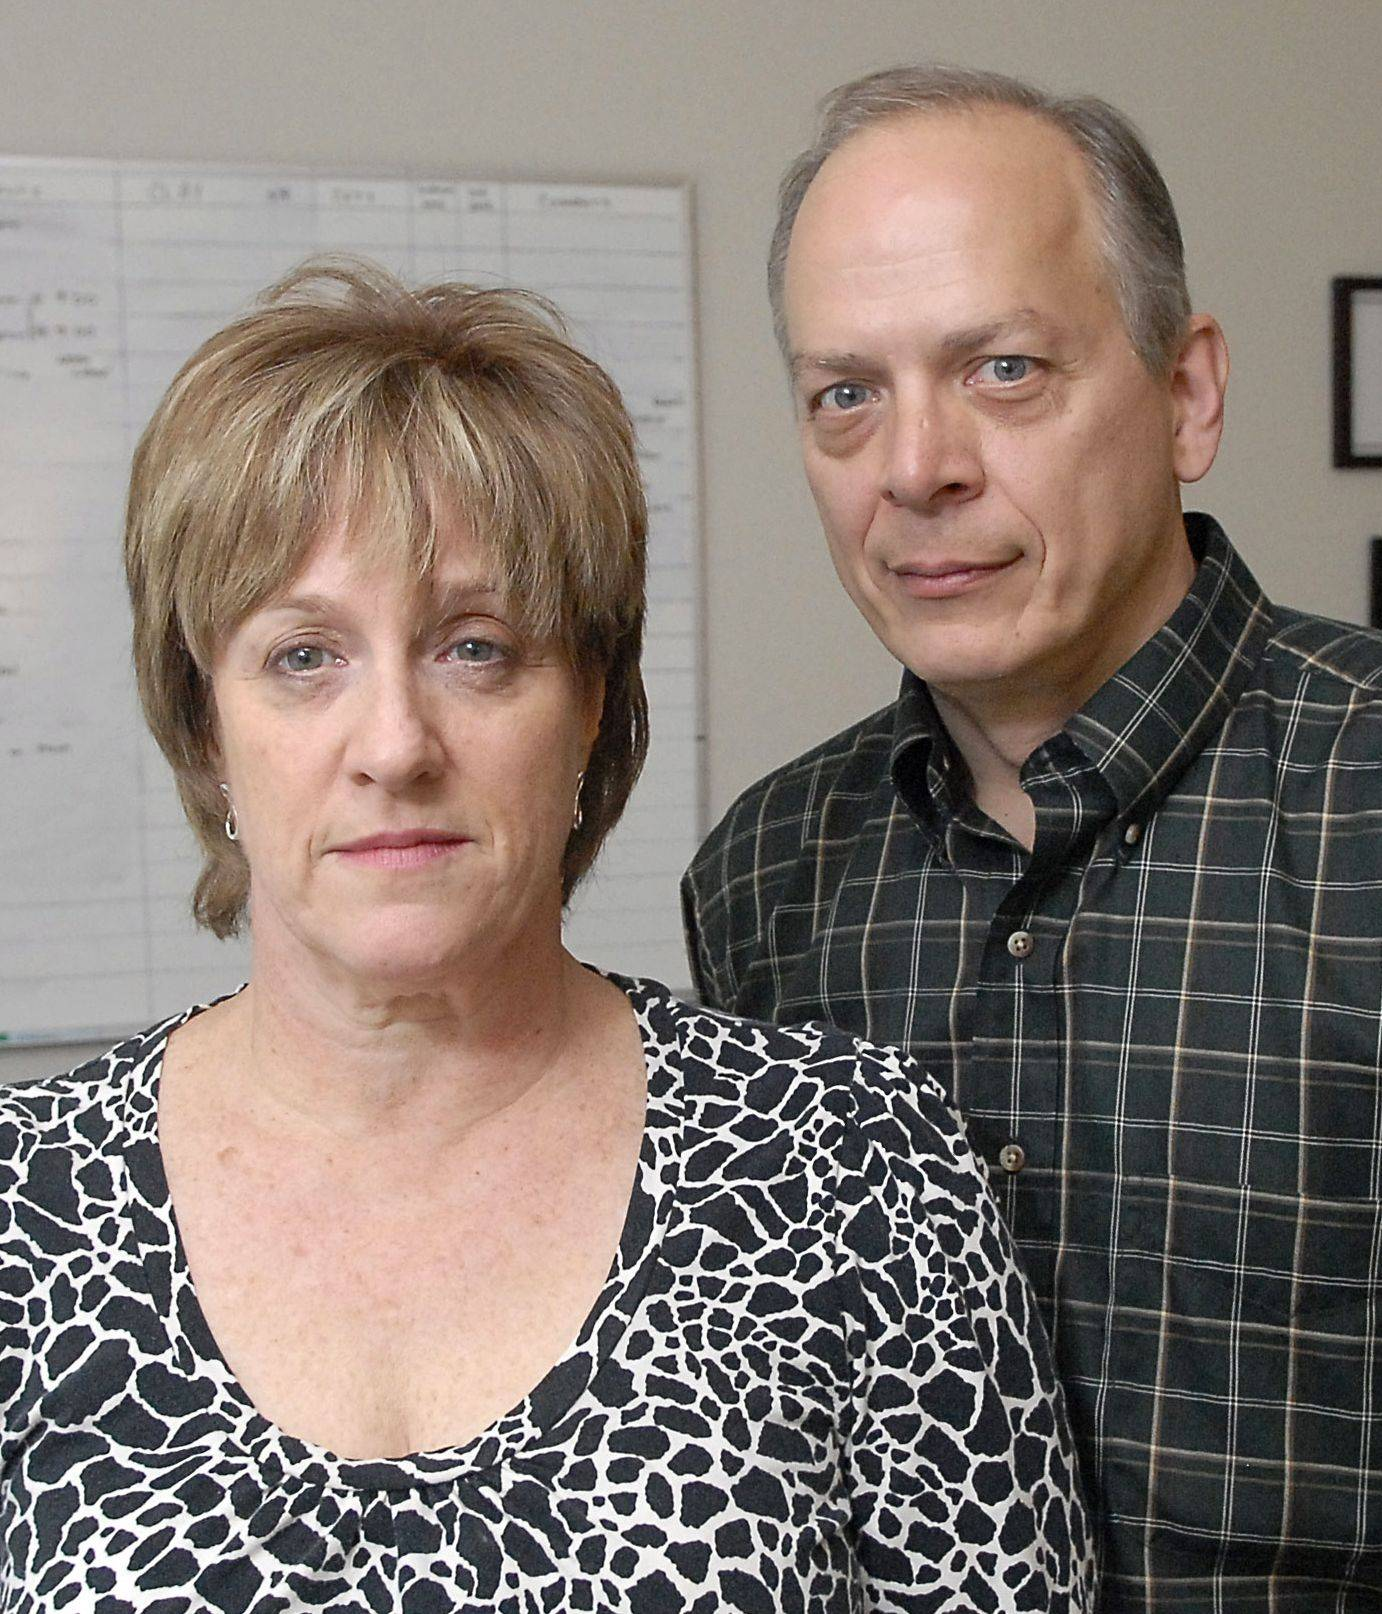 St. Charles residents Paul and Deb Conn said they lost service when Sprint began upgrading its network.